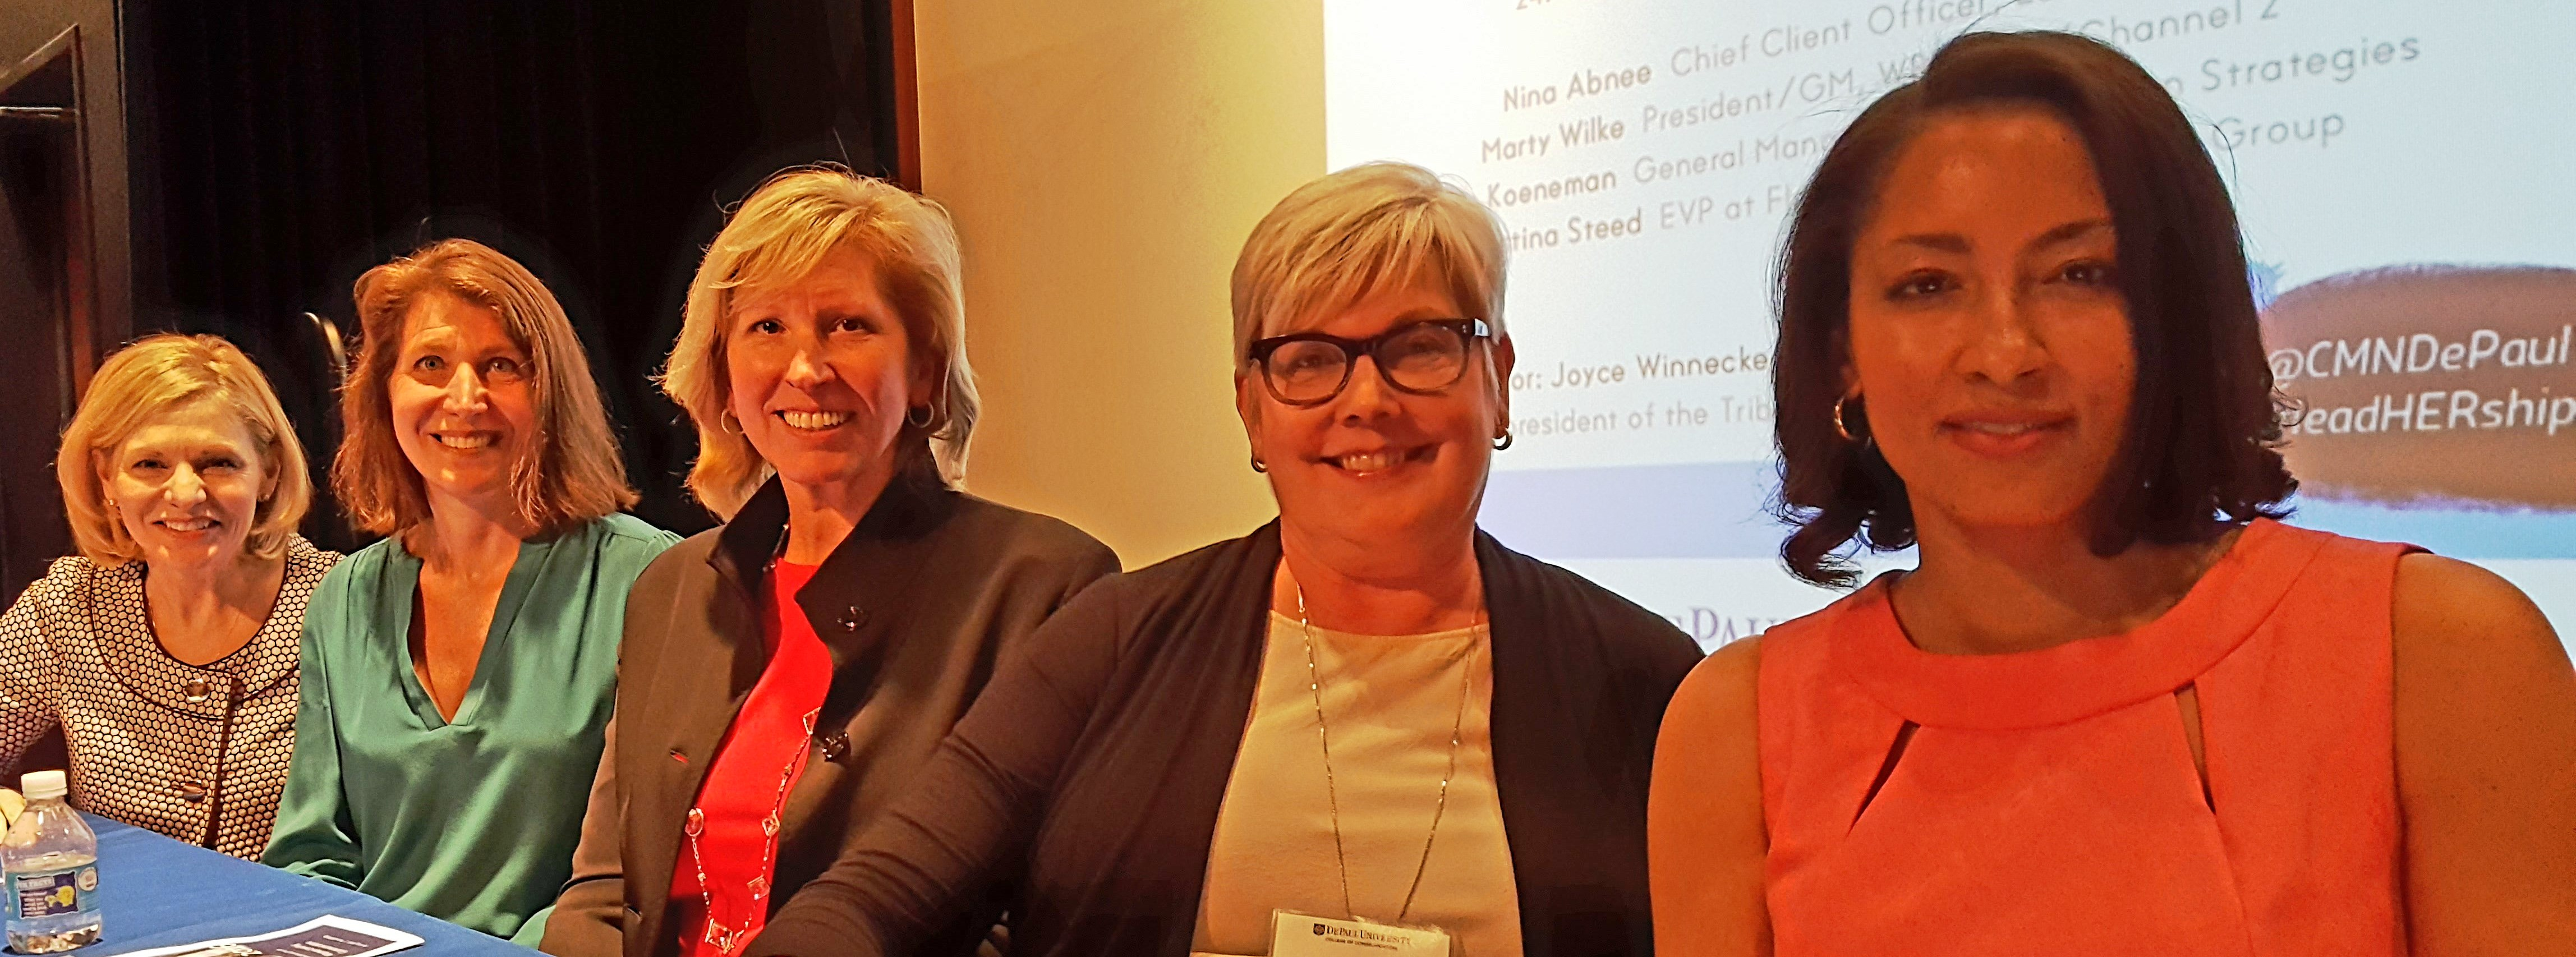 Student-organized #LeadHERship Panel from the Leadership 2.0 class at DePaul University, April 25, 2016.  From left to right, moderator Joycelyn Winneke, formerly of Tribune Content Agency; Claire Koeneman, Hill + Knowlton Strategies; Marty Wilke, WBBM-TV/Channel 2 Chicago; Nina Abnee, Leo Burnett; Christina Steed, Flowers Communications Group.  Photo: Ron Culp.